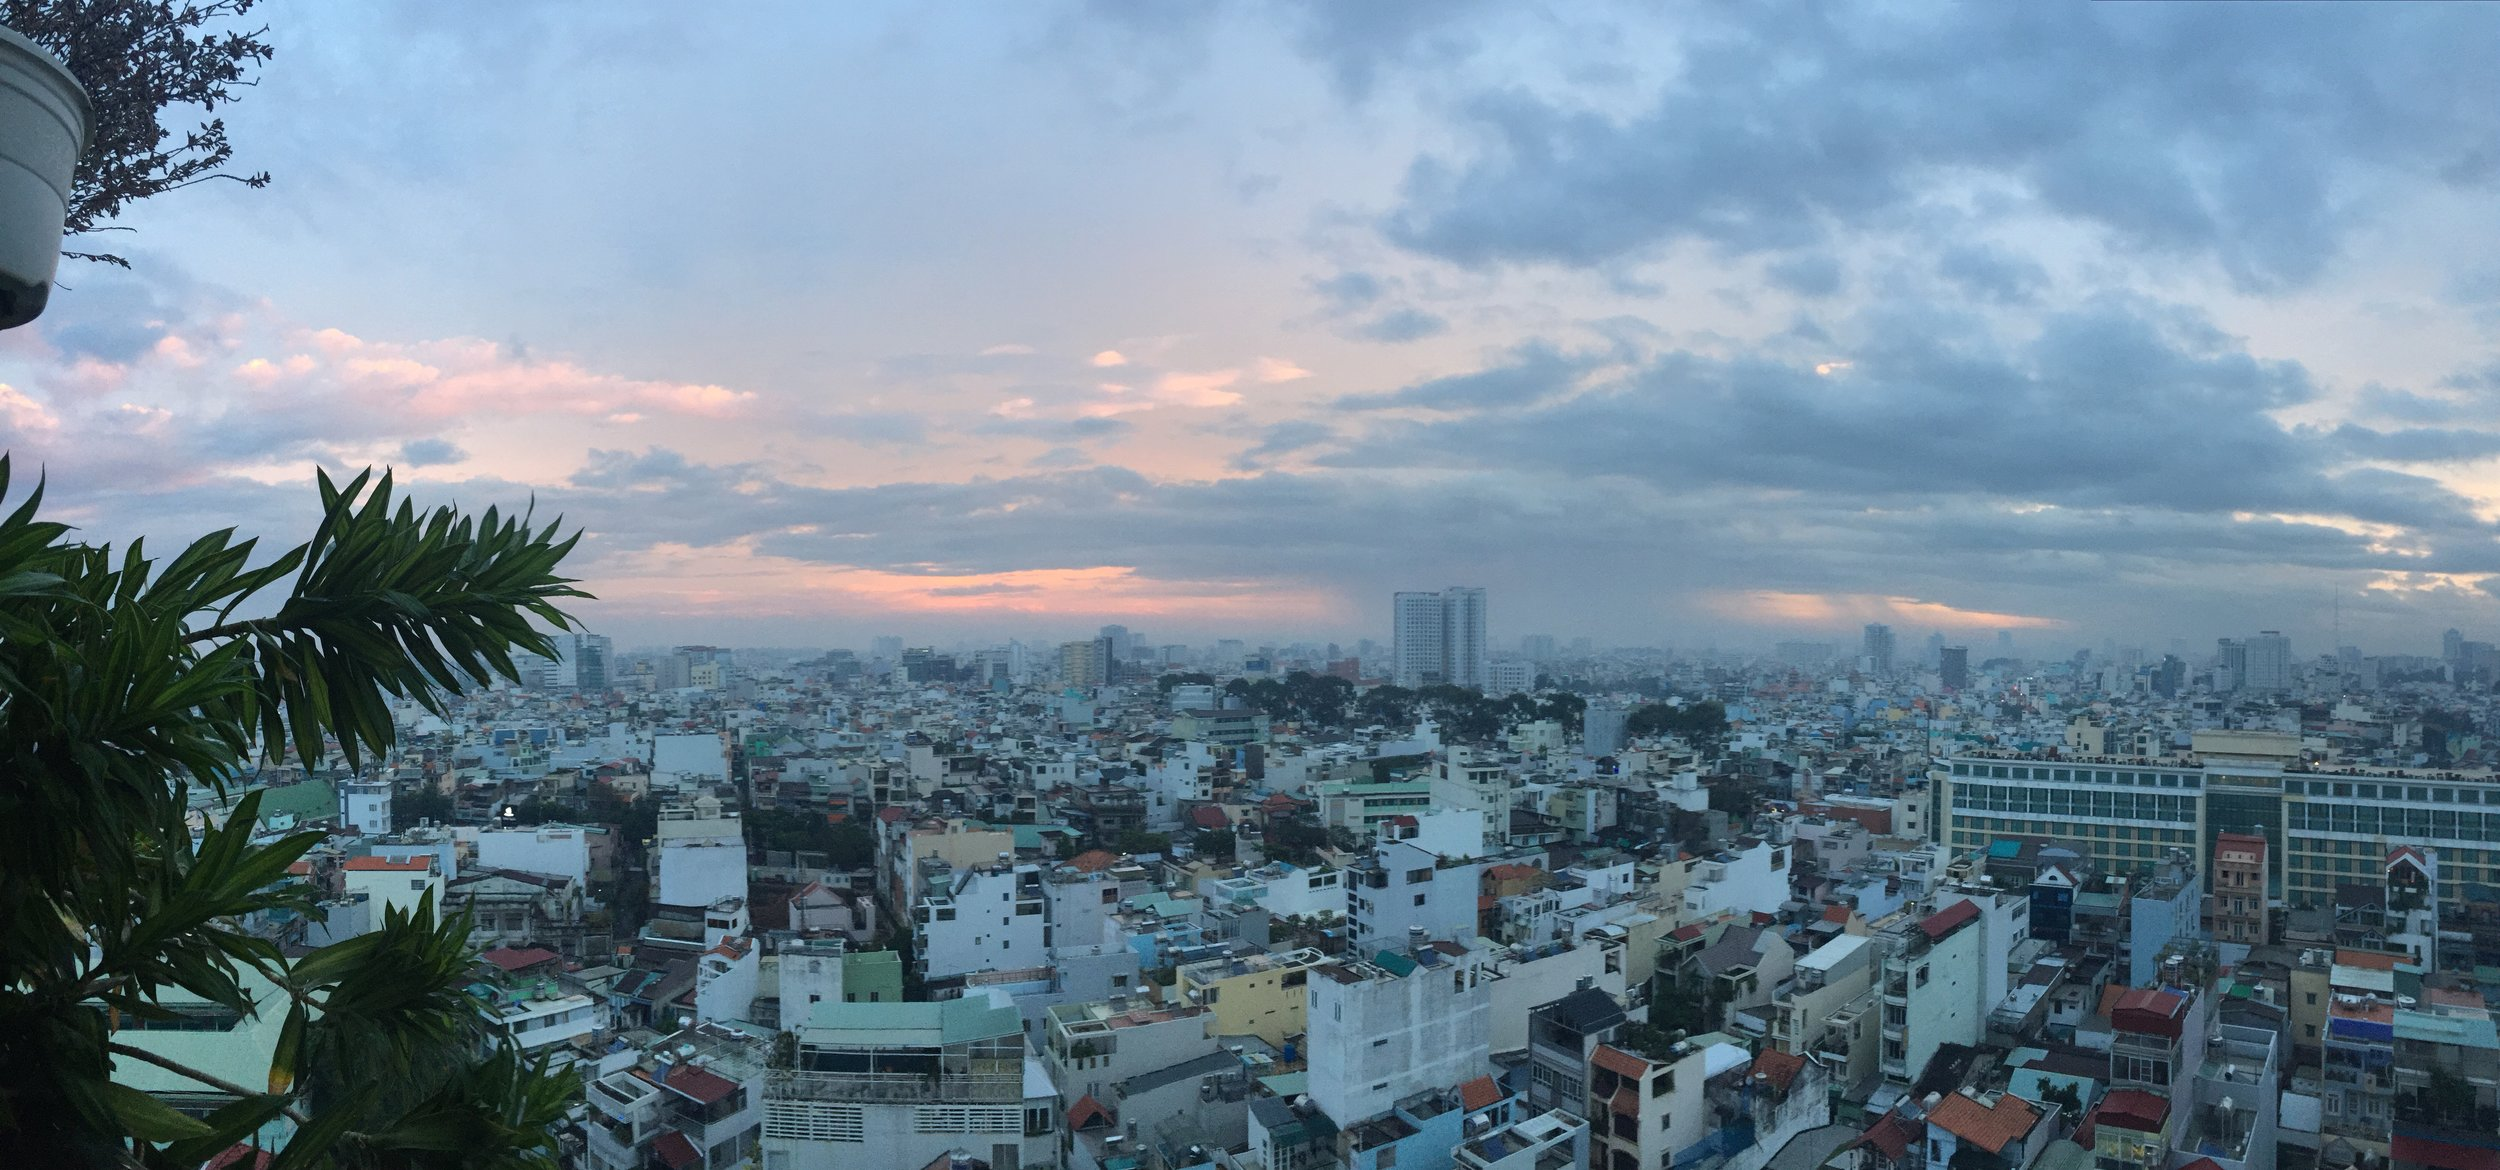 The view from our Airbnb in Saigon (Ho Chi Minh City). #nofilter